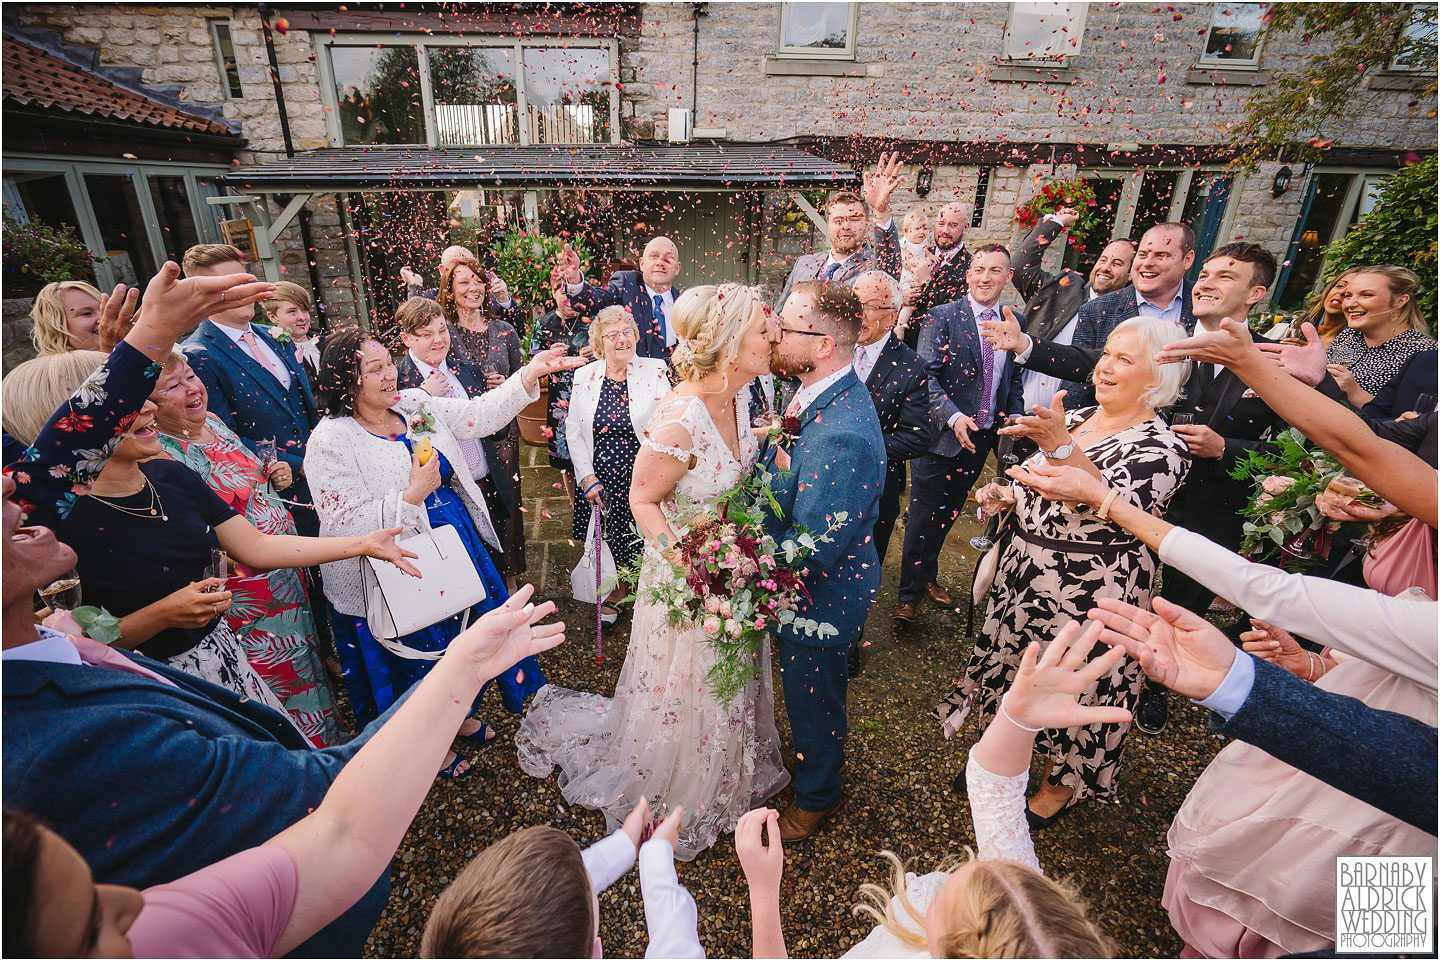 Wedding confetti photo at The Star Harome, papakata Wedding photos yorkshire, The Star Harome Wedding, Wedding photos at The Star in Harome, Wedding pictures at The Star Inn Harome